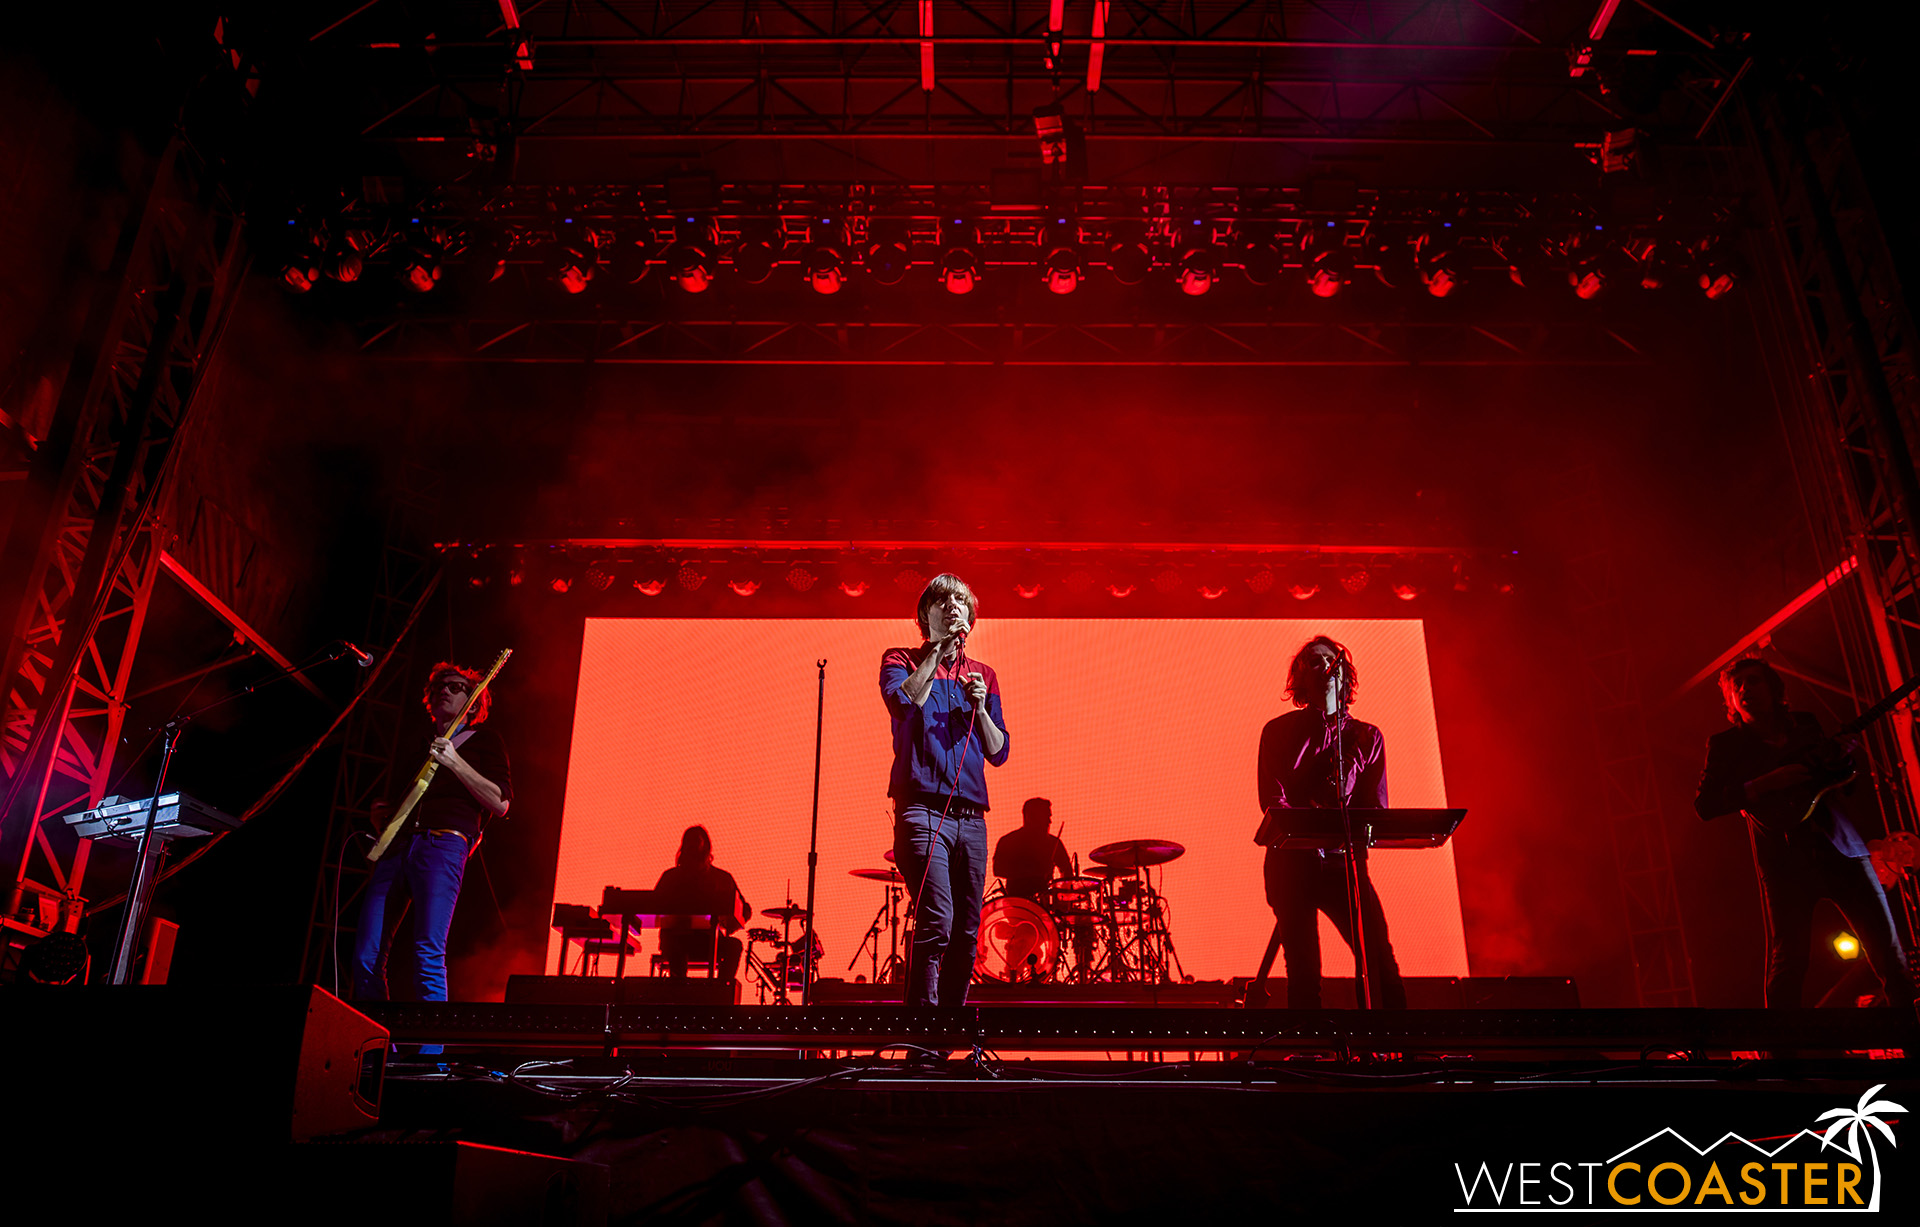 Phoenix headlines the night at Just Like Heaven festival.